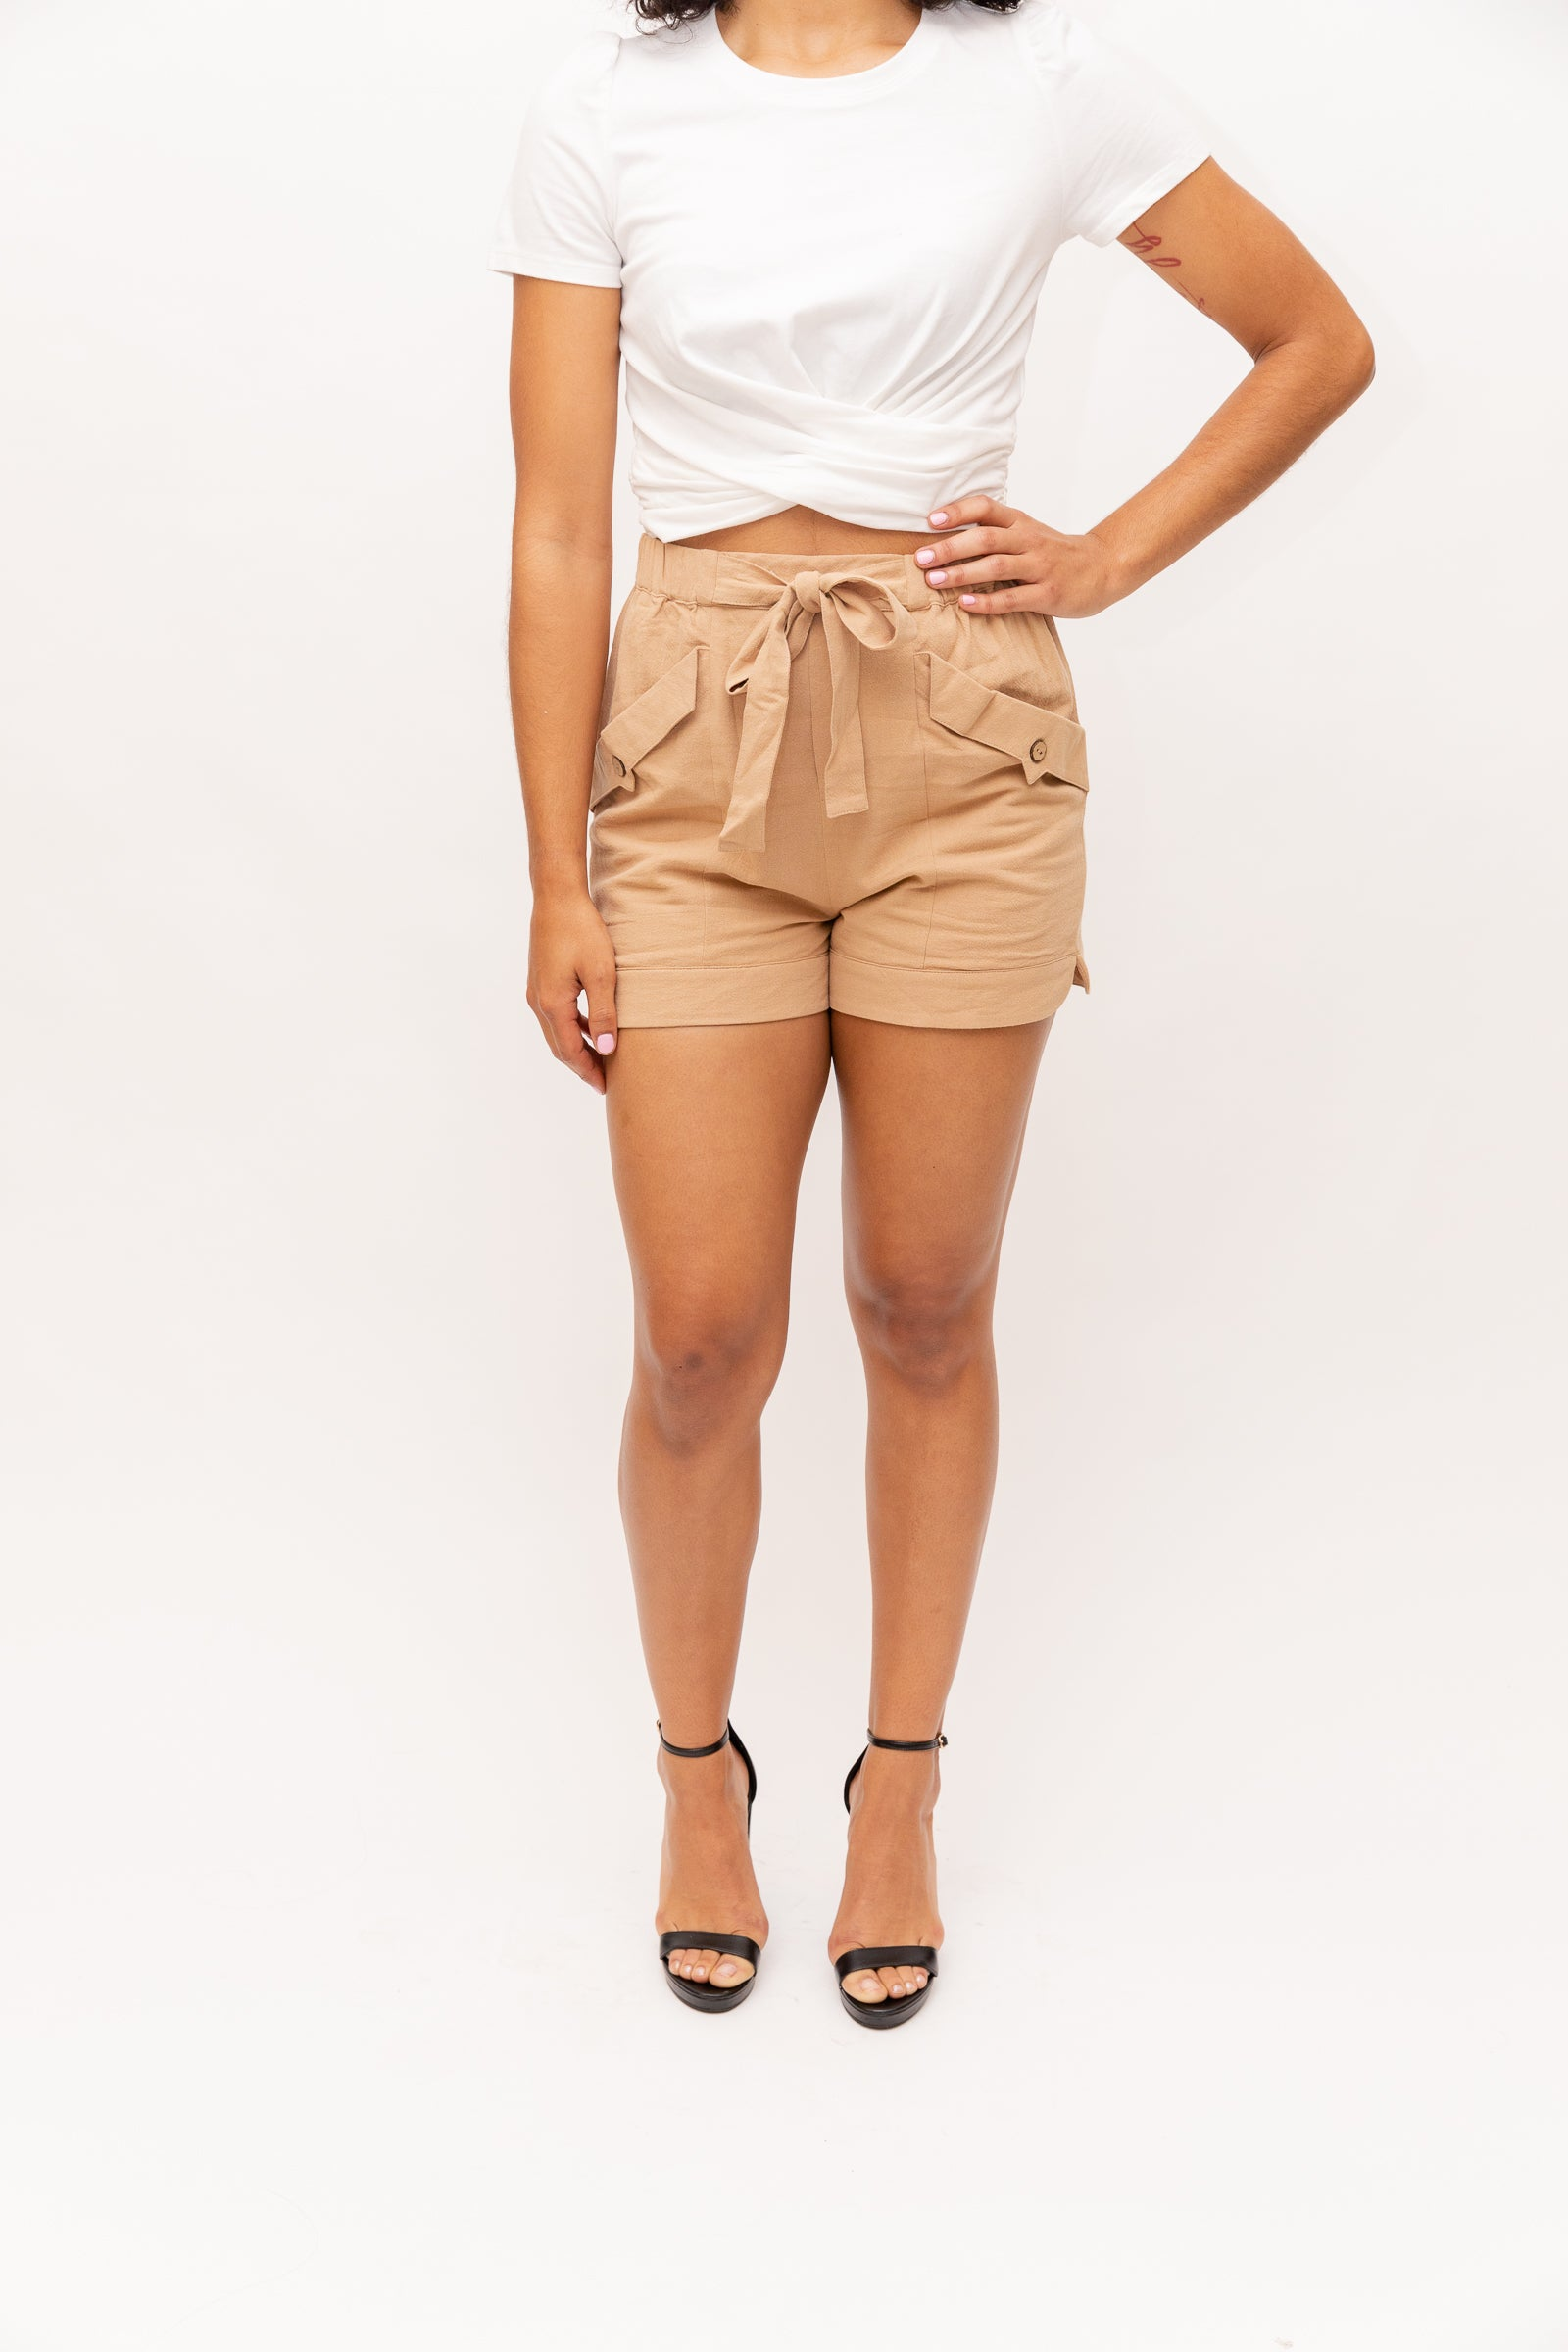 Elastic paper bag style waistband goes down to flapped and buttoned pockets then into relaxed-fit shorts. These casual shorts feature a fabric tie to wind through the belt loops and to cinch the waist.